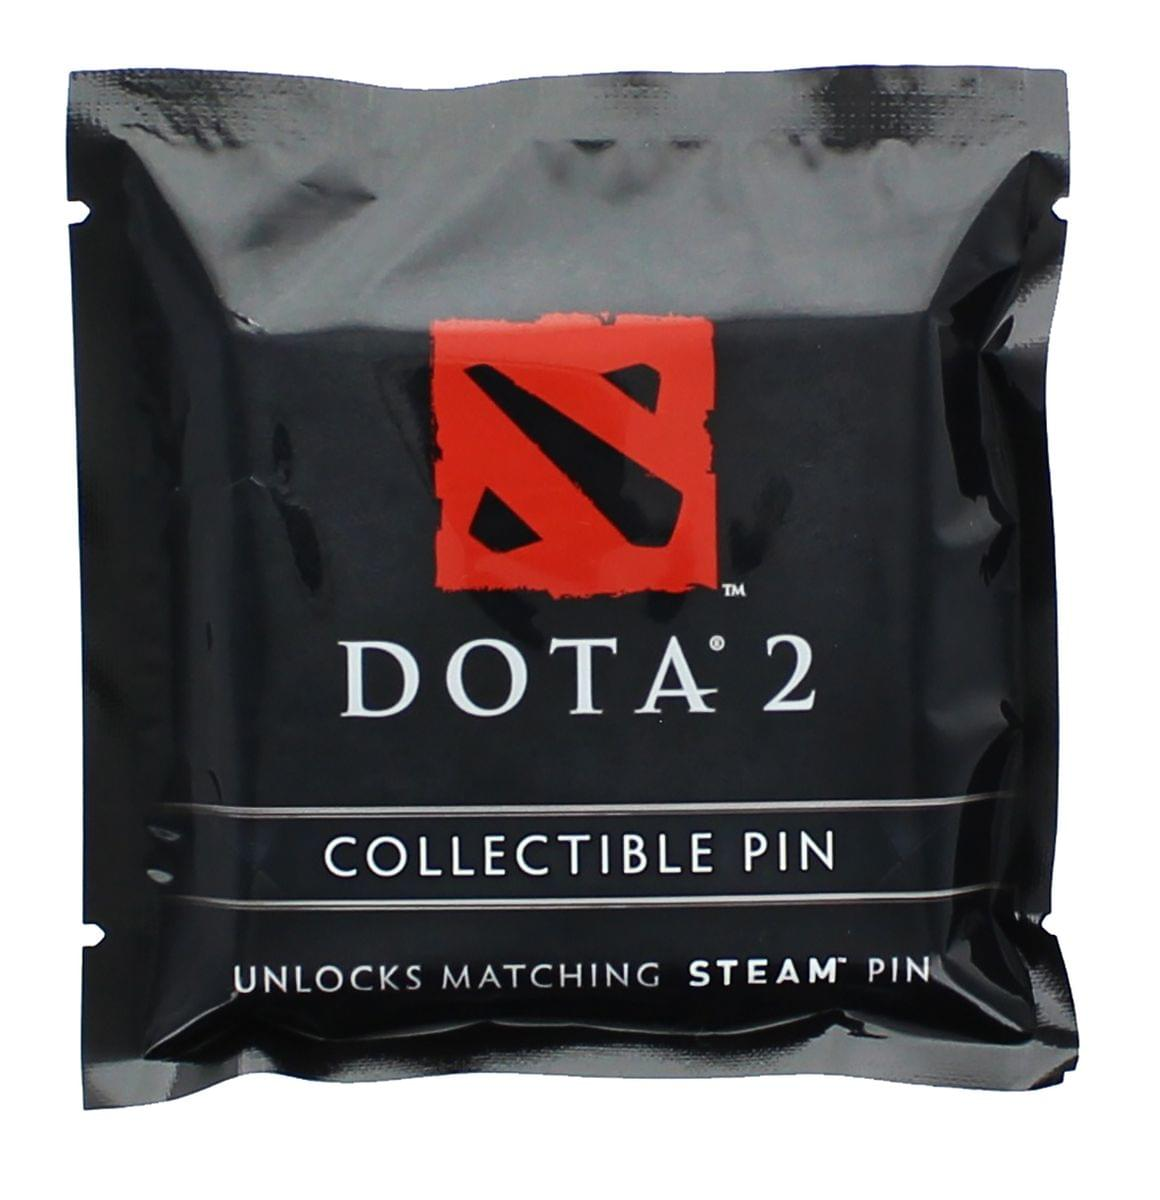 DOTA 2 Series 1 Blind Boxed Collectible Enamel Pin - One Random